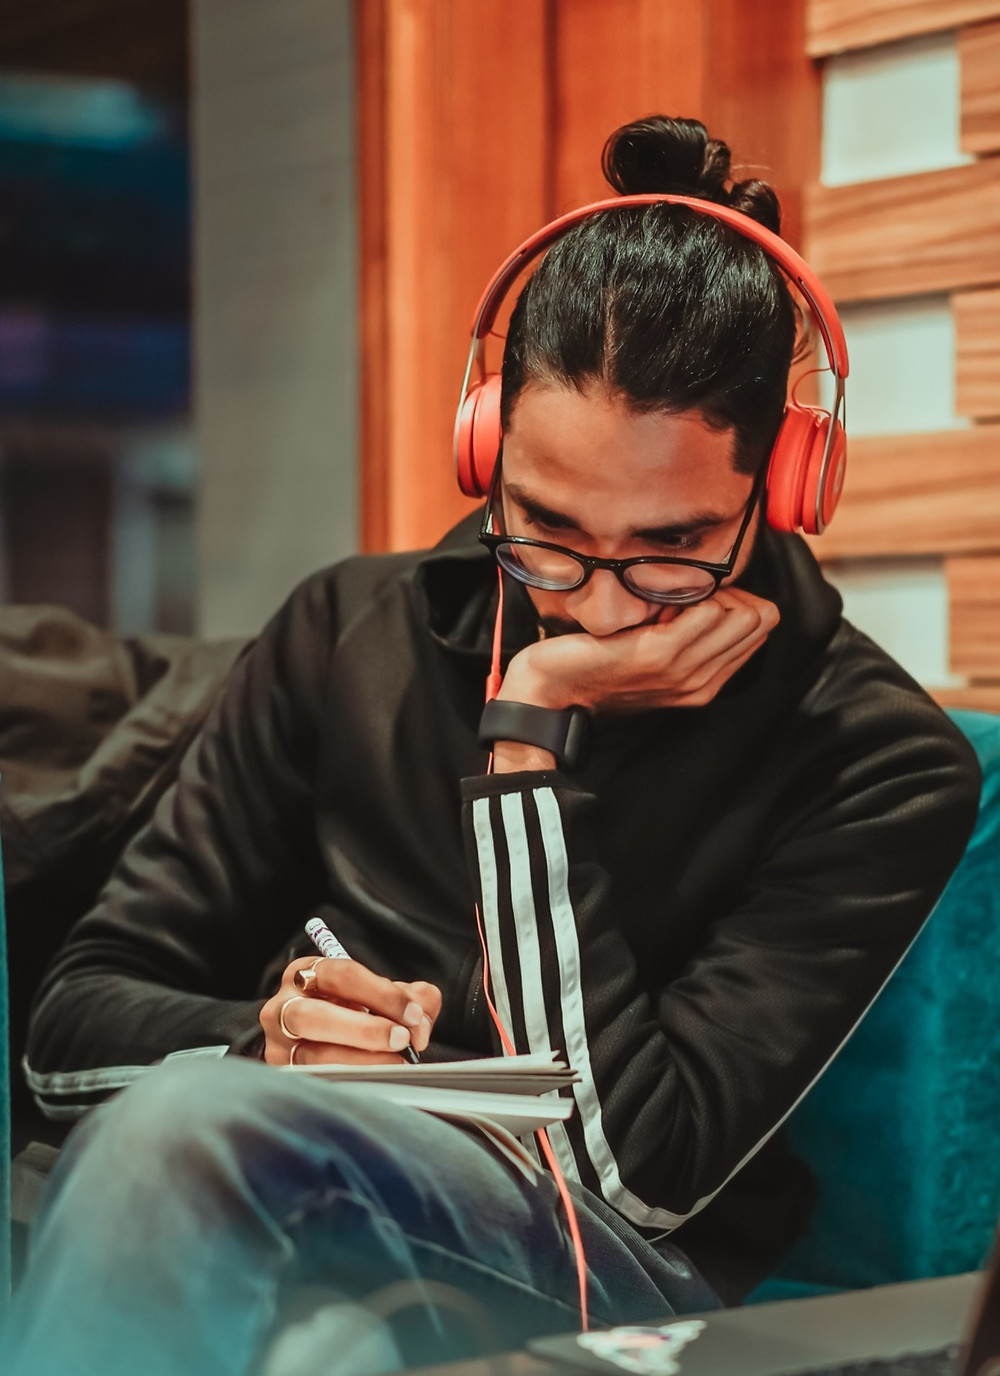 Male teenager listening to music and writing in journal